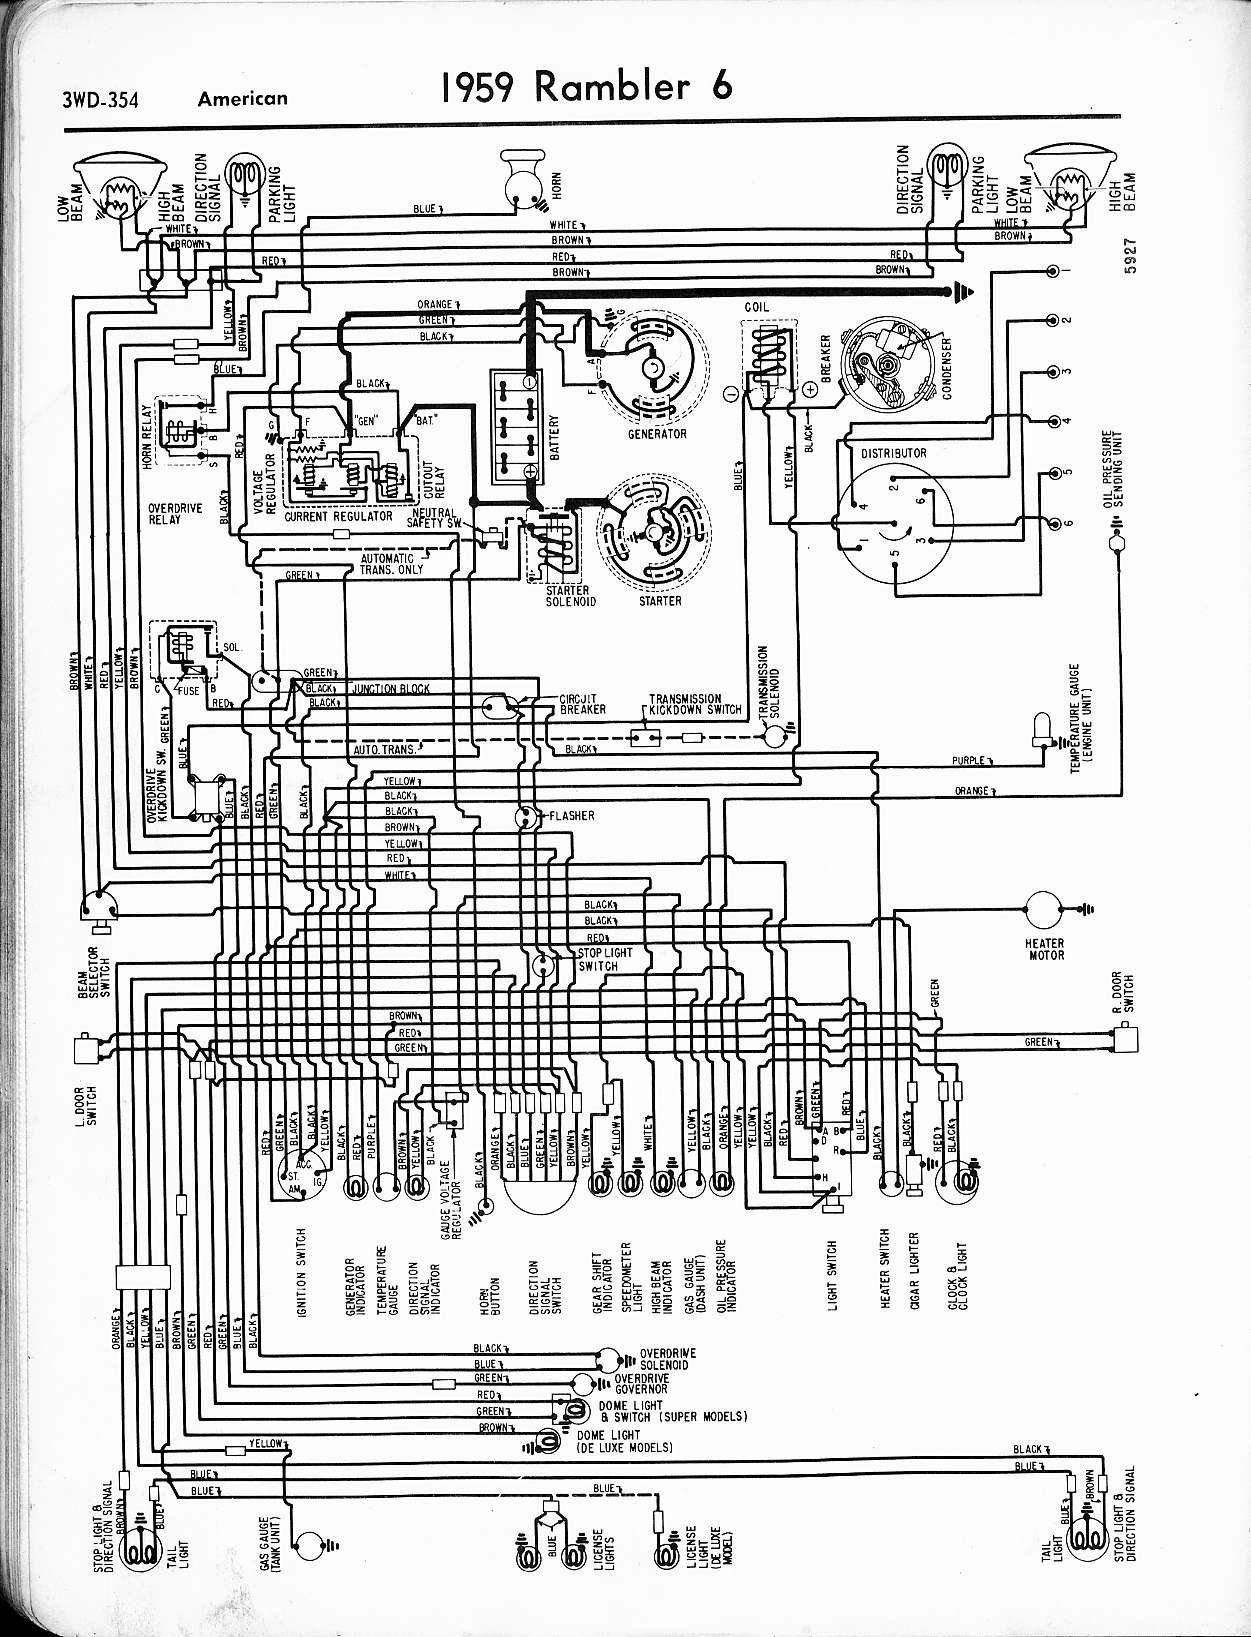 MWire5765 354 rambler wiring diagrams the old car manual project old car manual project wiring diagrams at soozxer.org